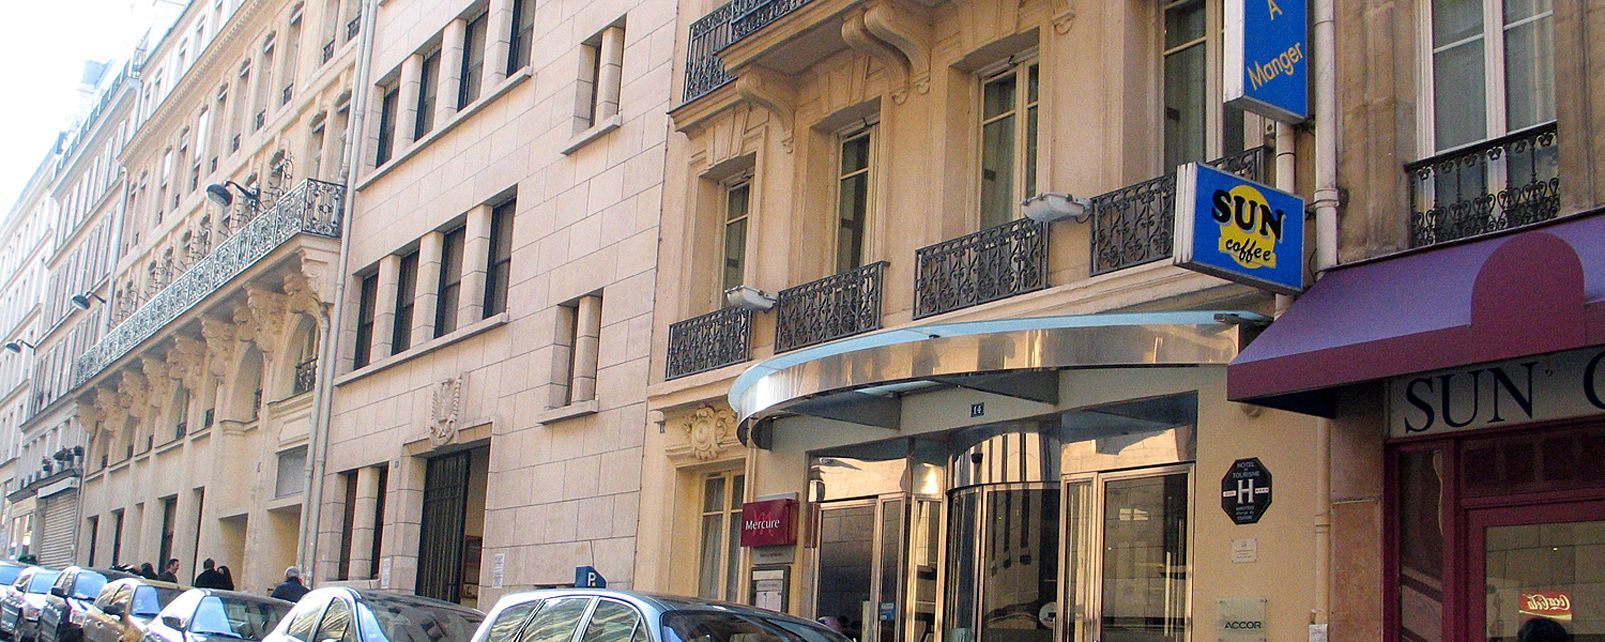 Hotel mercure paris la sorbonne for Hotel sorbonne paris